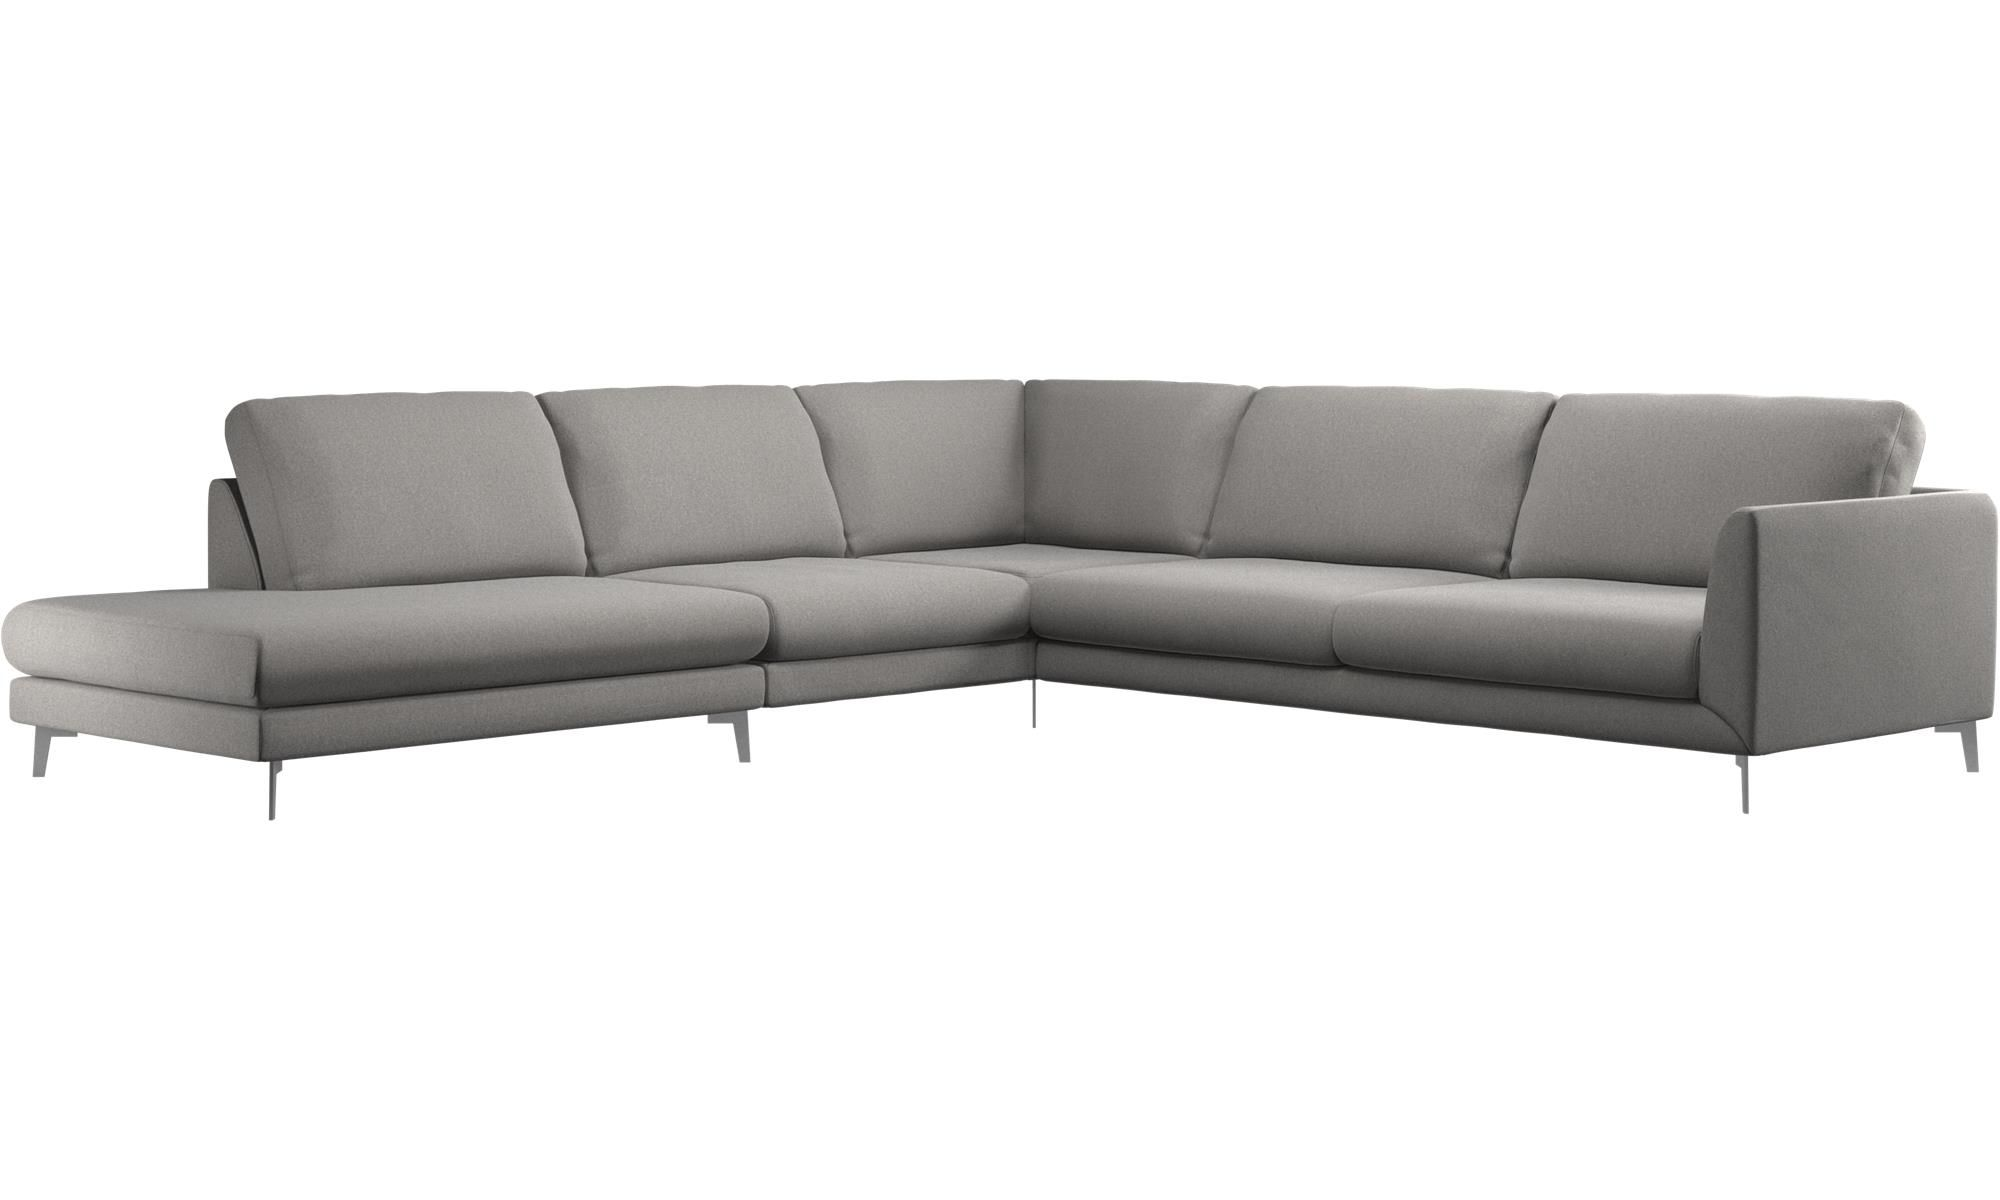 Sofas With Open End   Fargo Corner Sofa With Lounging Unit   Grey   Fabric